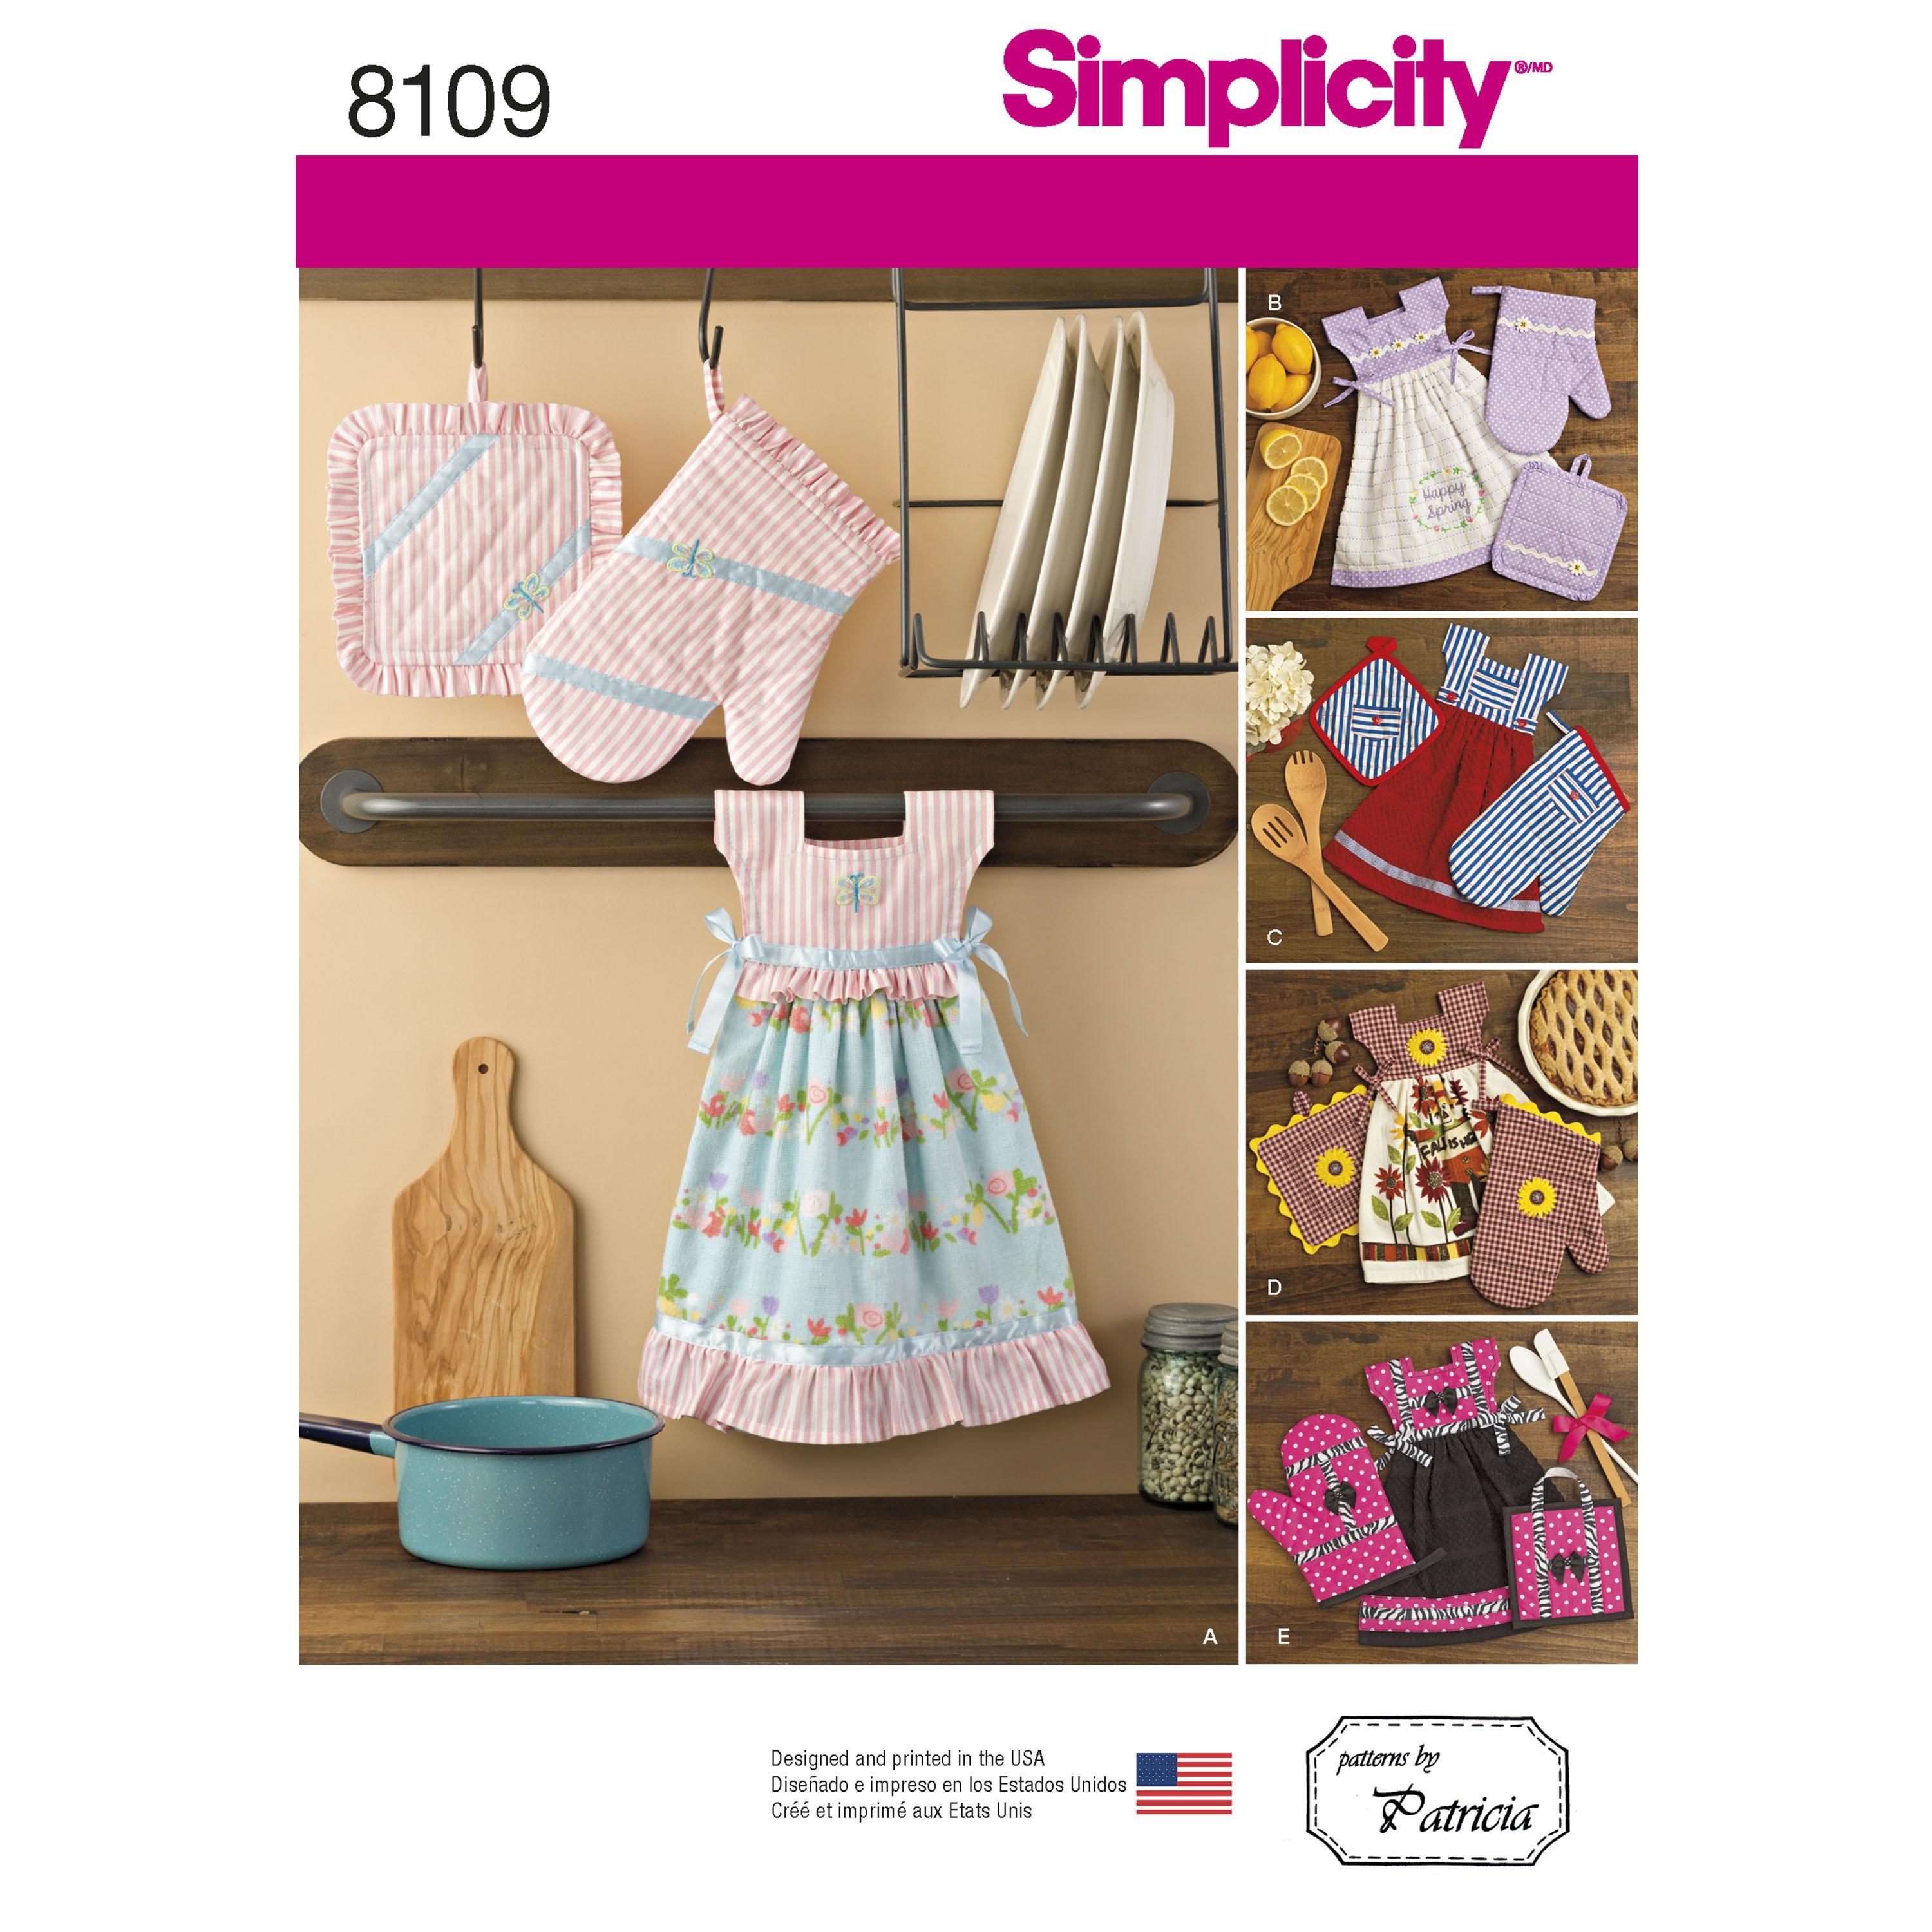 Simplicity S8109 Towel Dresses, Pot Holders and Oven Mitts